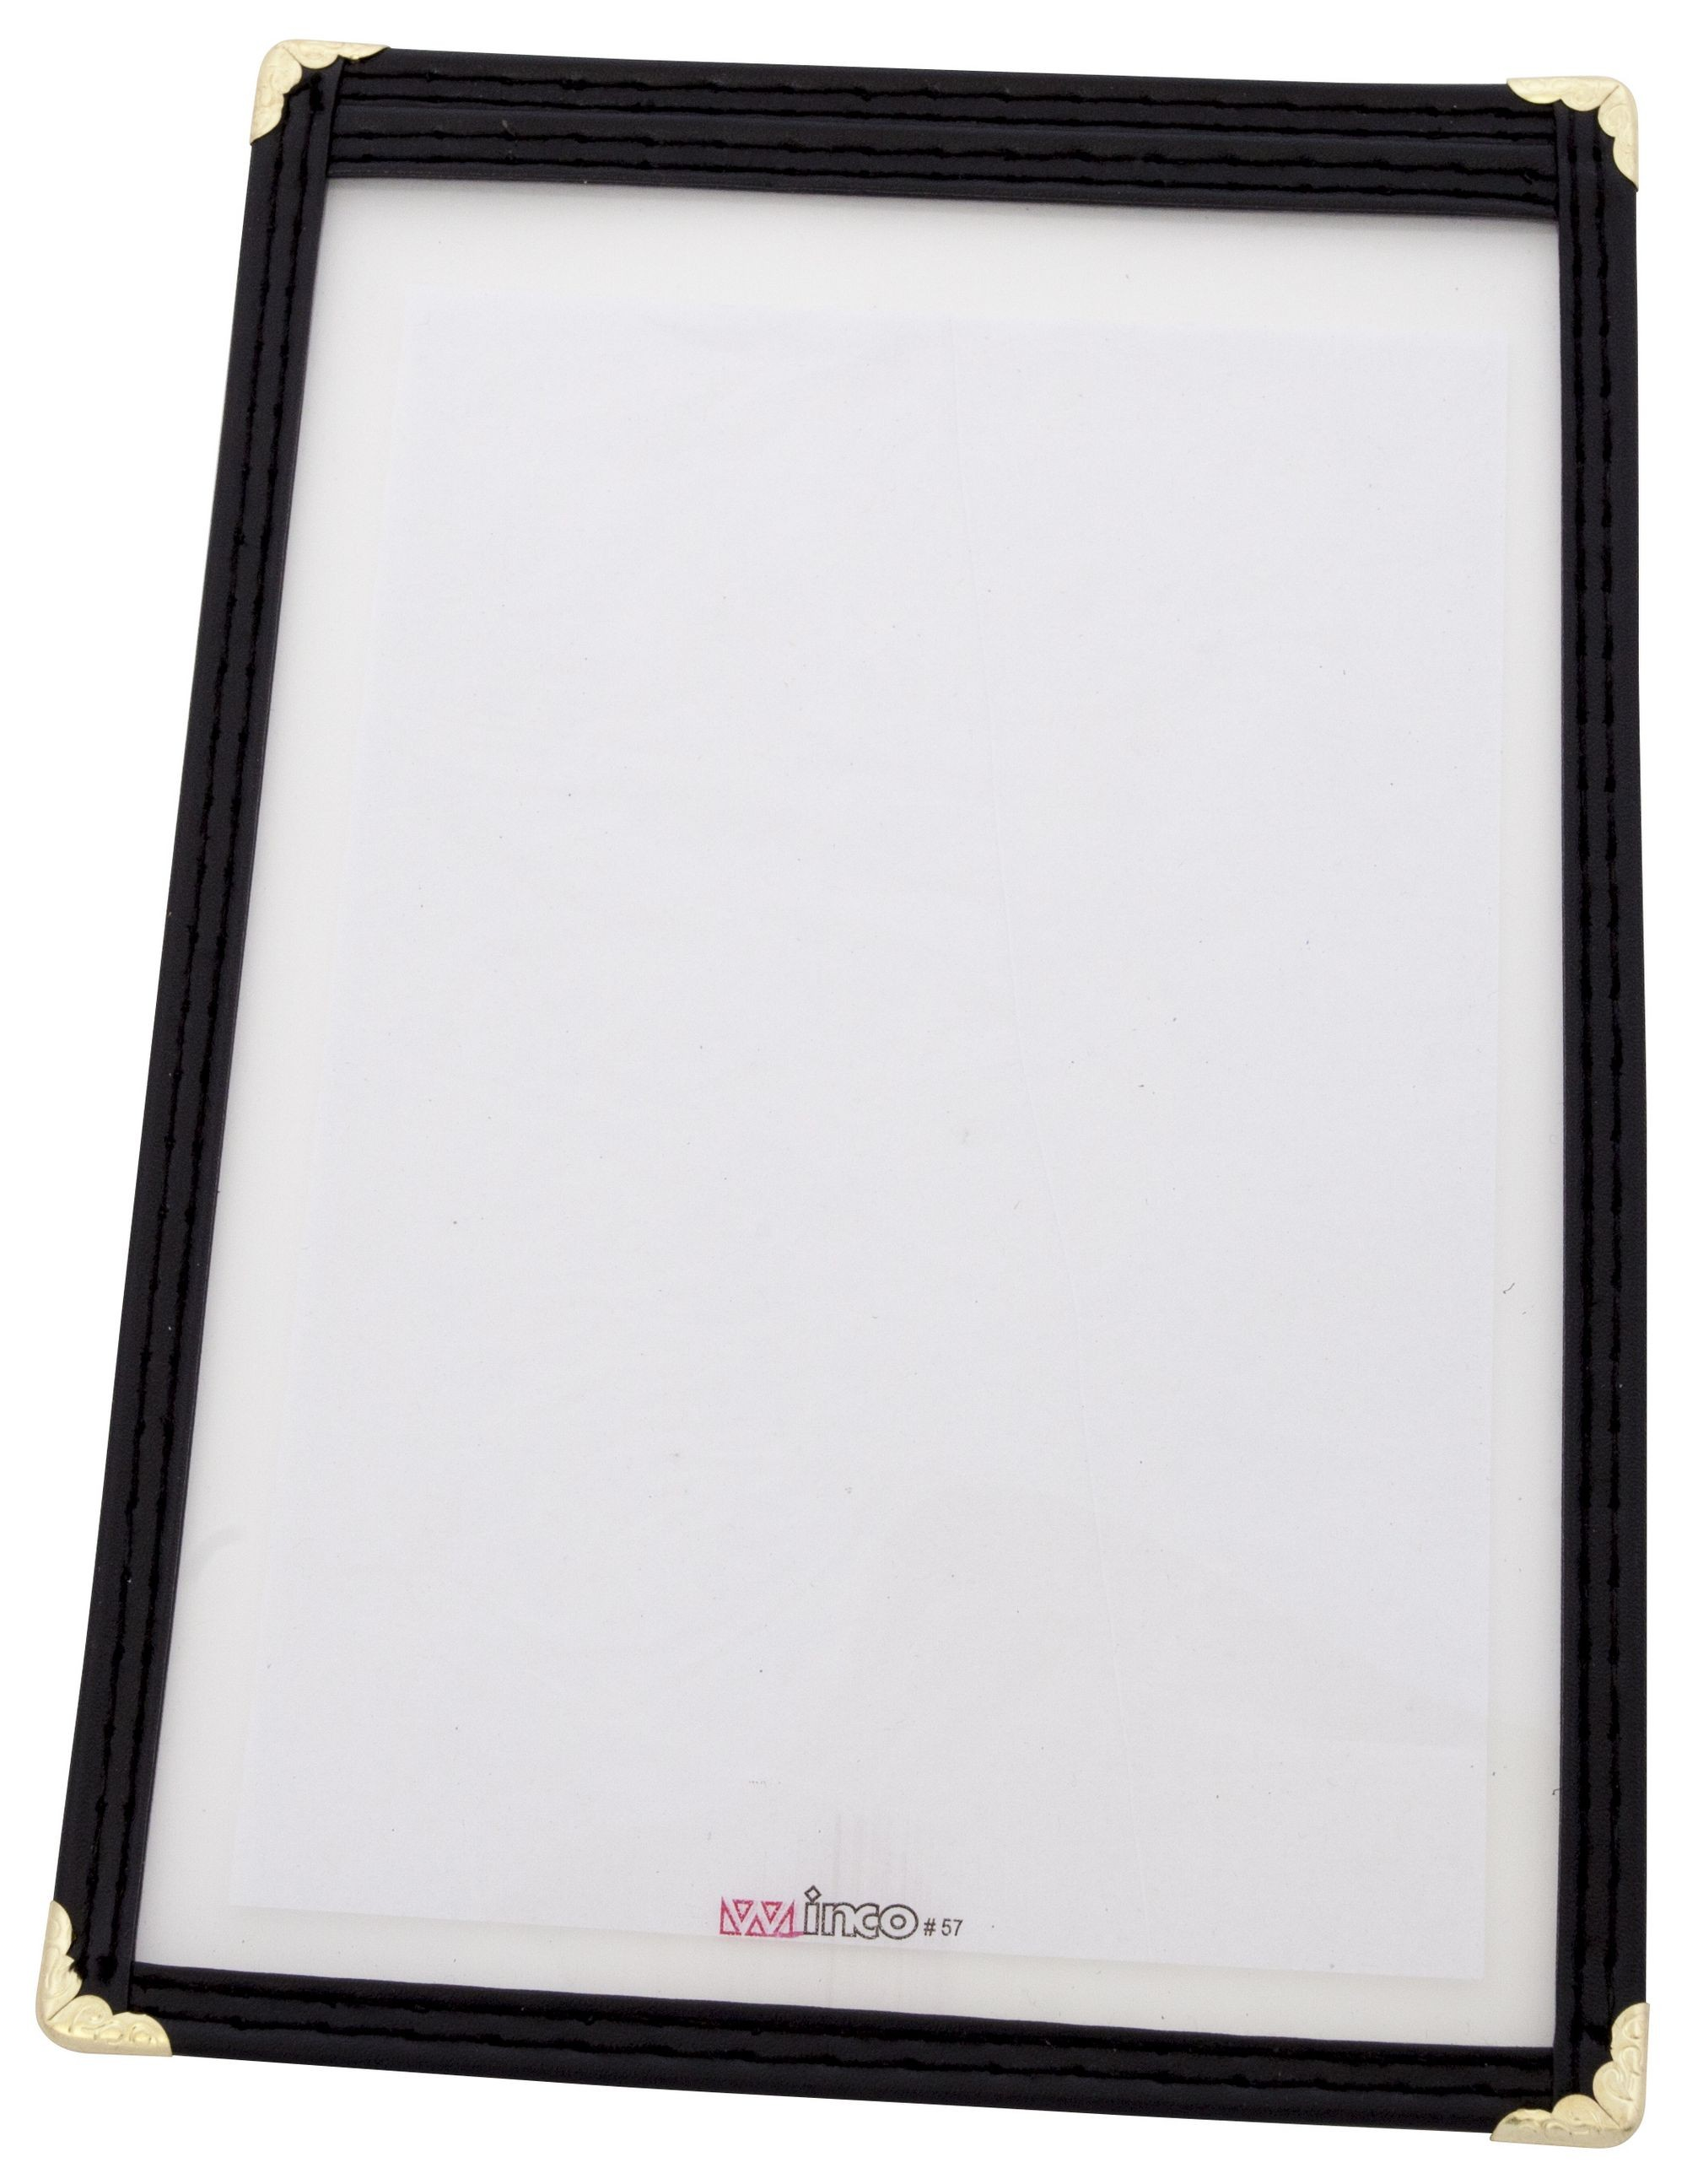 "Winco PMC-5K Black Single Menu Cover, 6-3/8"" x 9-3/8"""